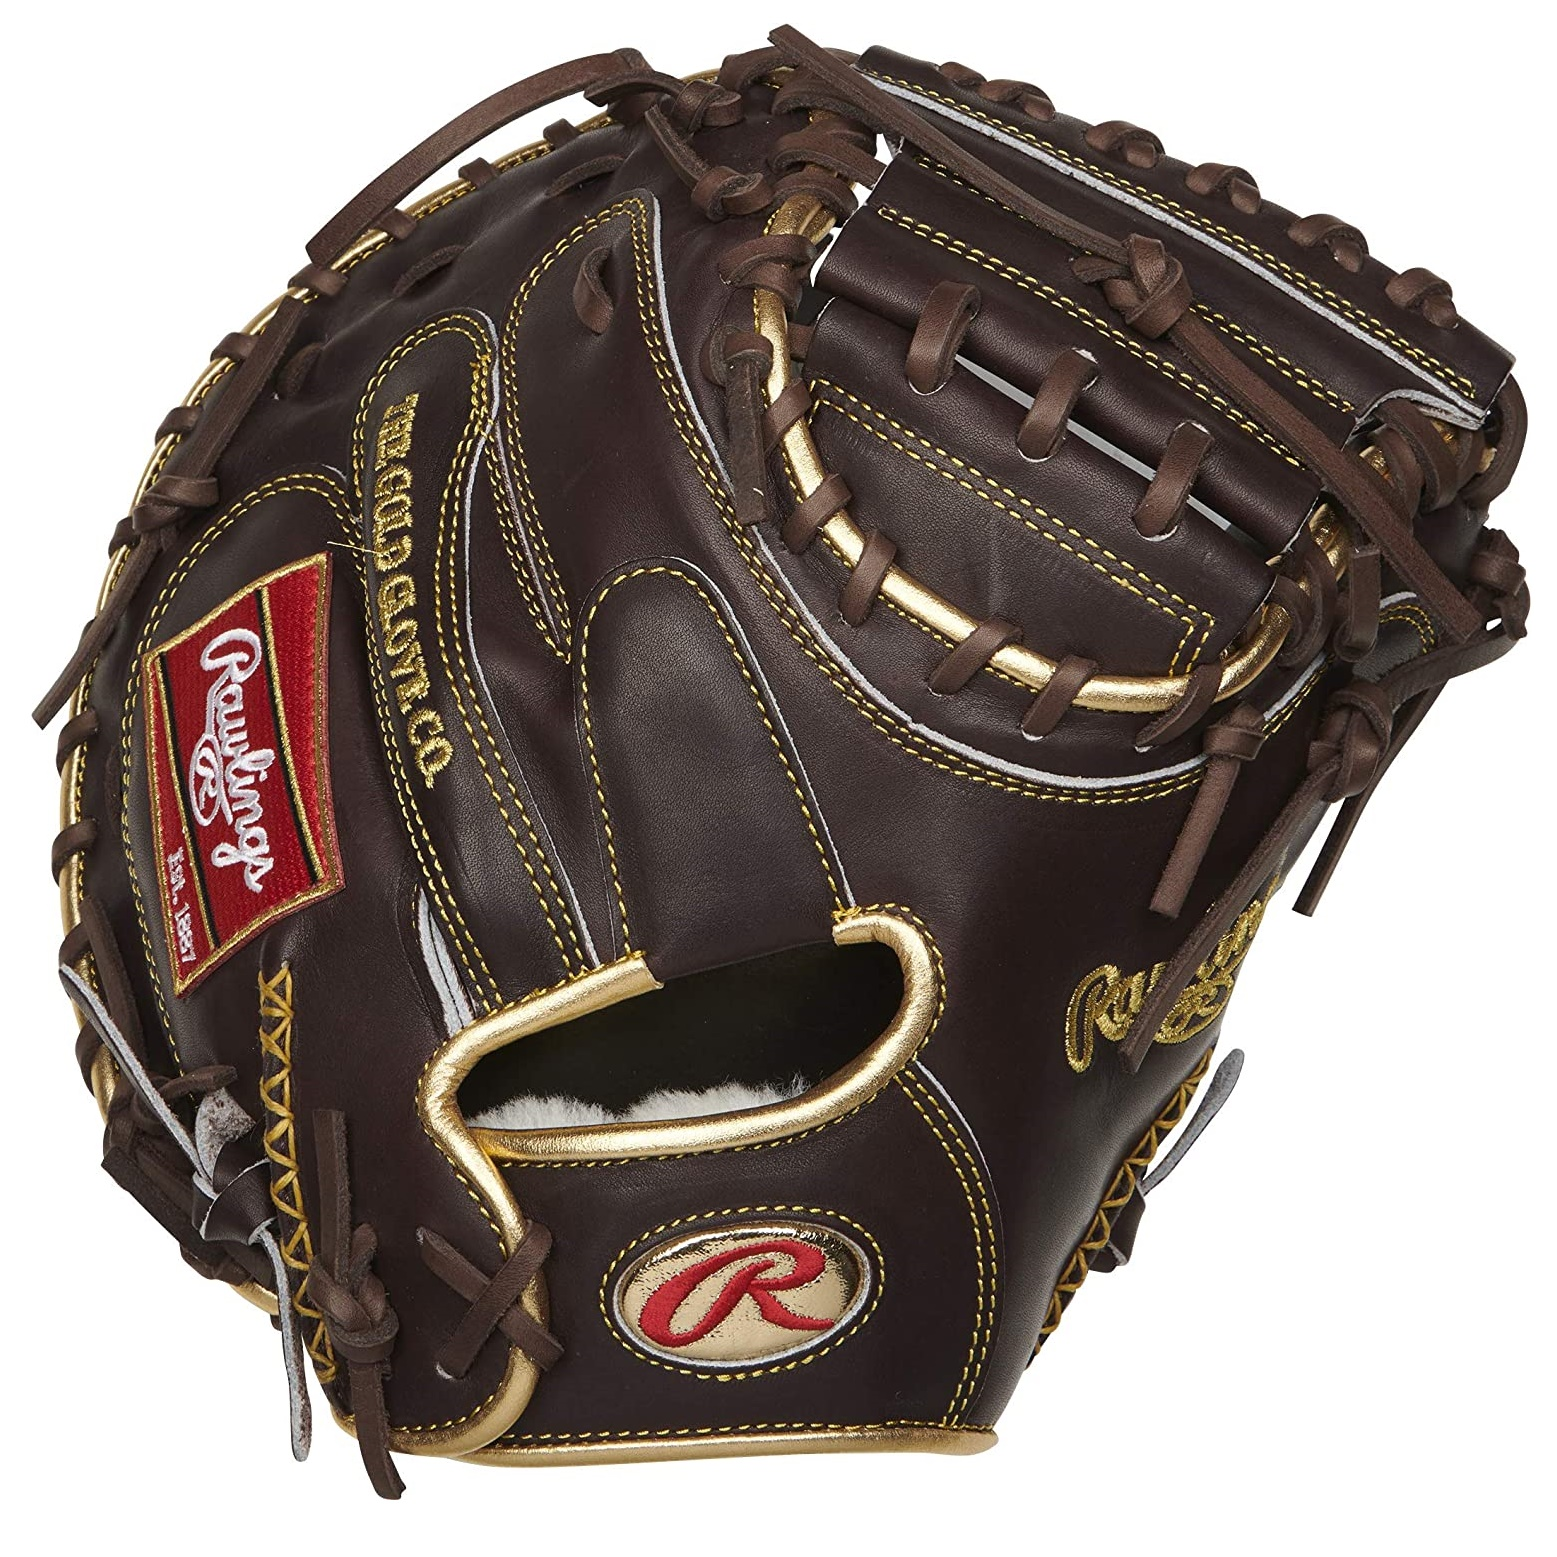 rawlings-gold-glove-series-catchers-mitt-1-piece-closed-web-34-inch-right-hand-throw RGGCM-43MO-RightHandThrow   The culmination of 130 years of Rawlings' glove-making craftsmanship the Rawlings